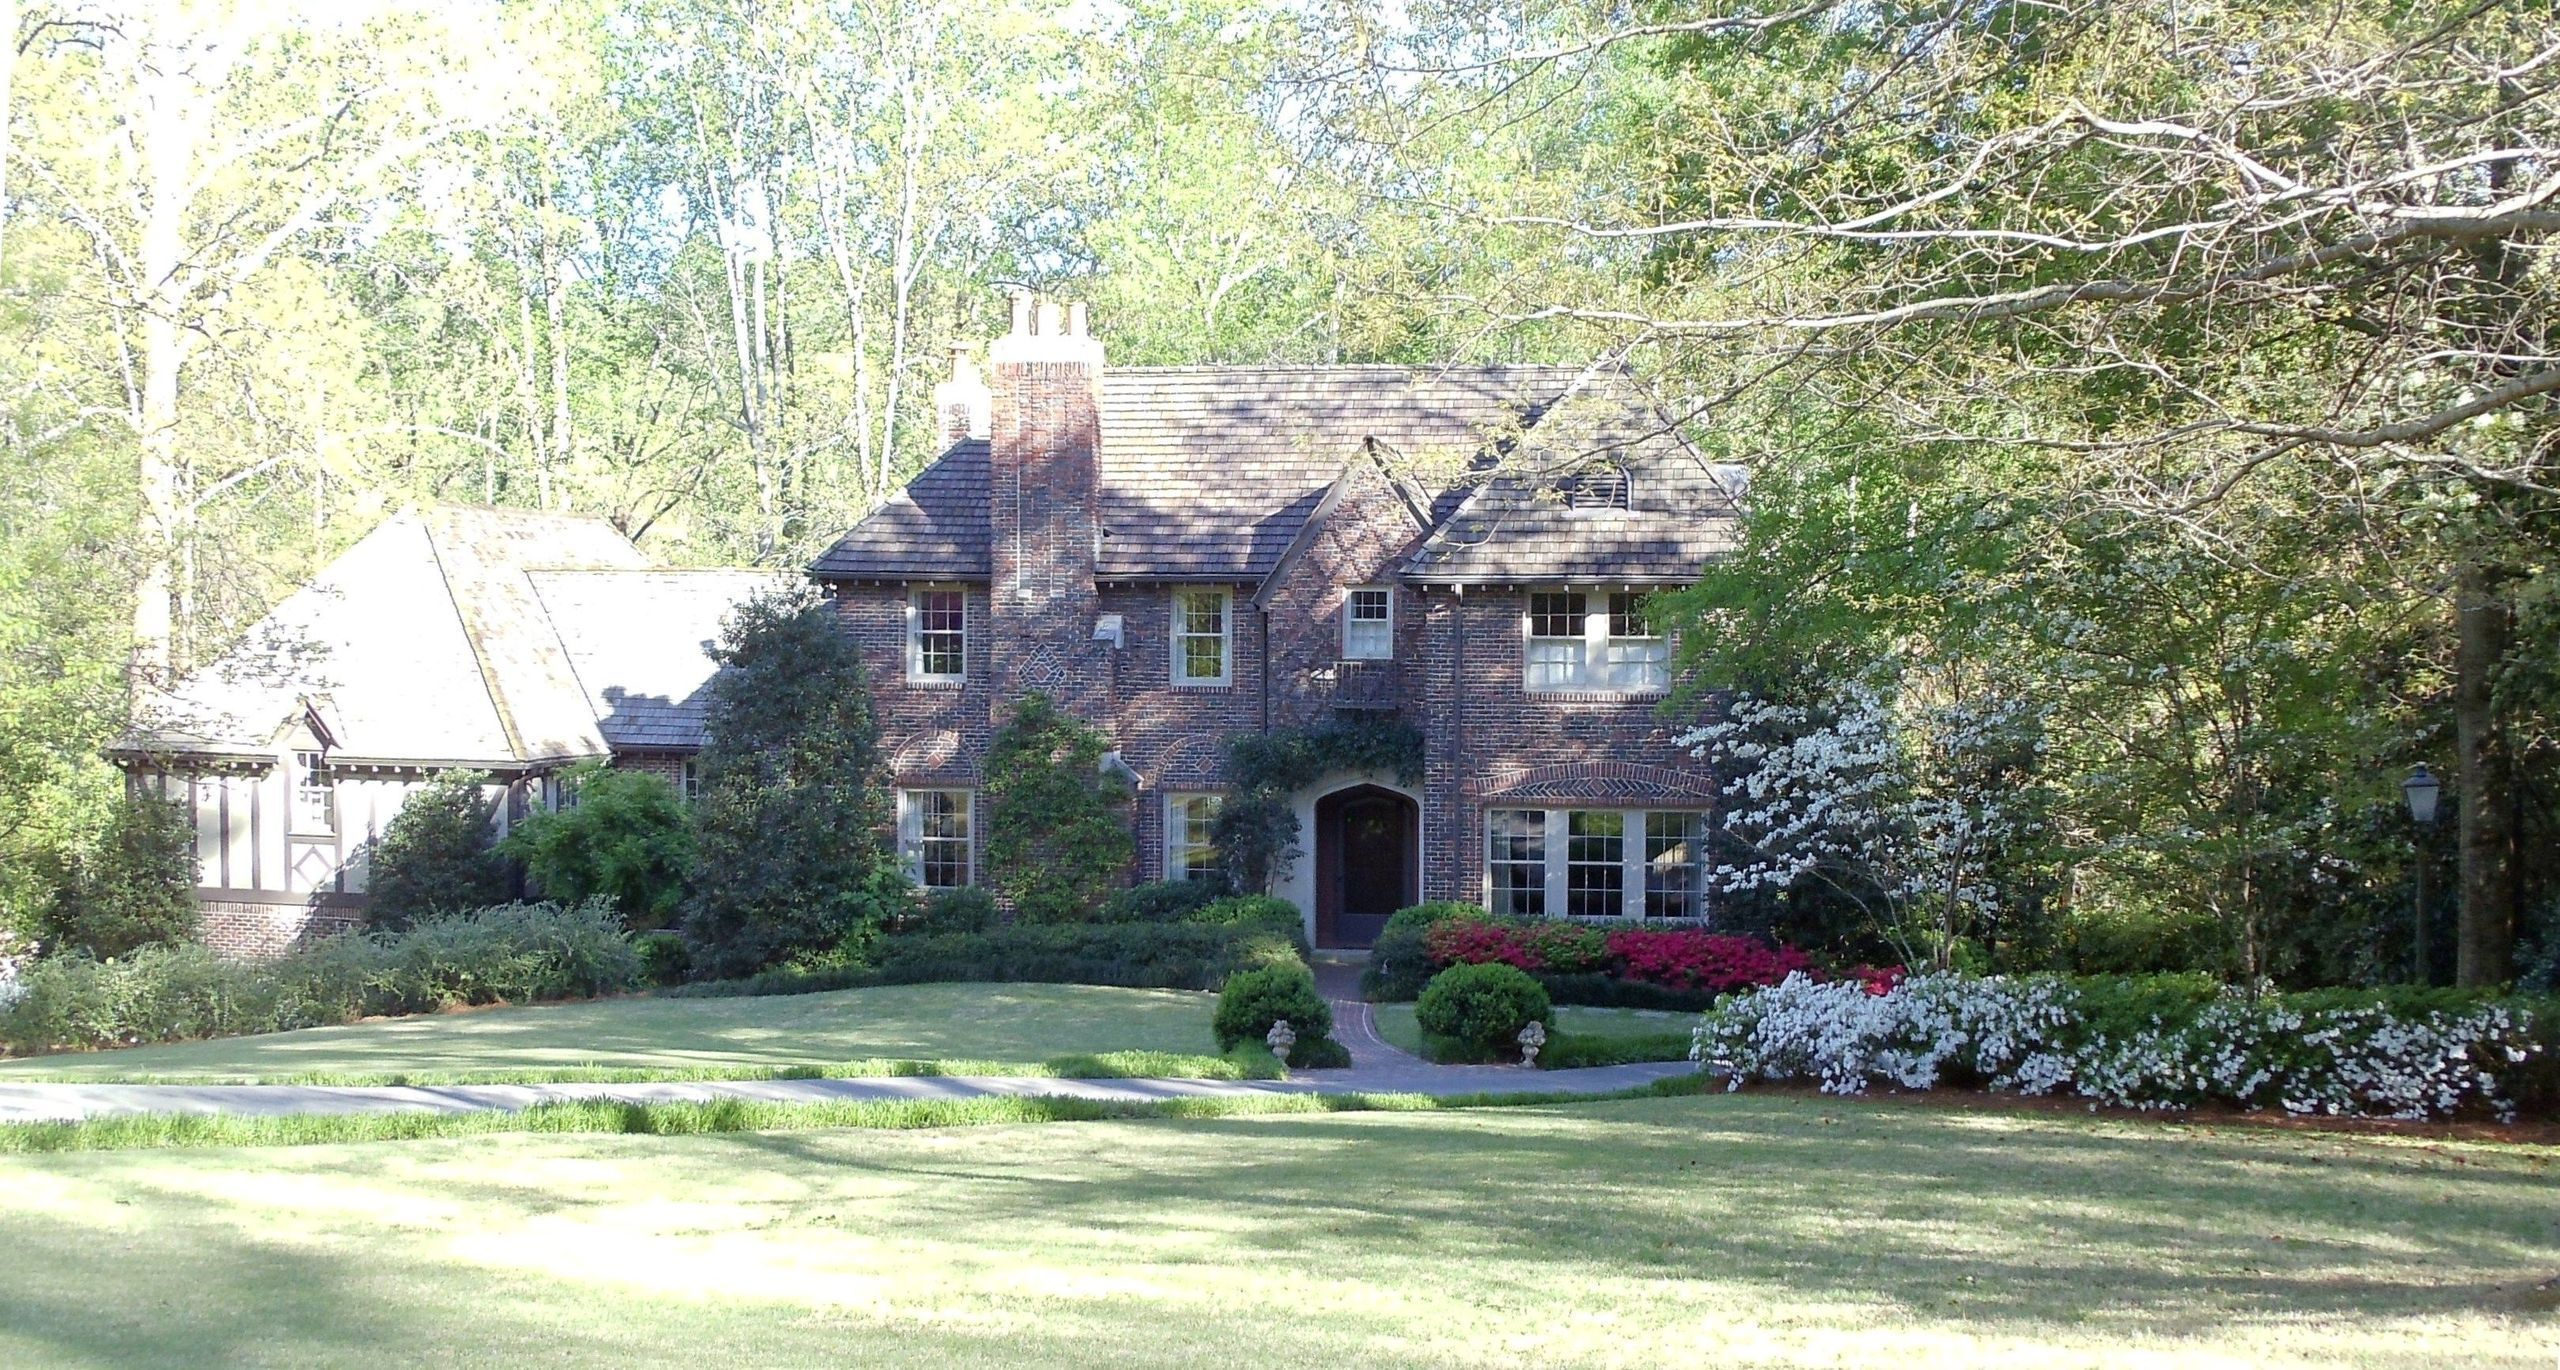 Brick Tudor w/ front chimney in Beautiful Mountain Brook Alabama image